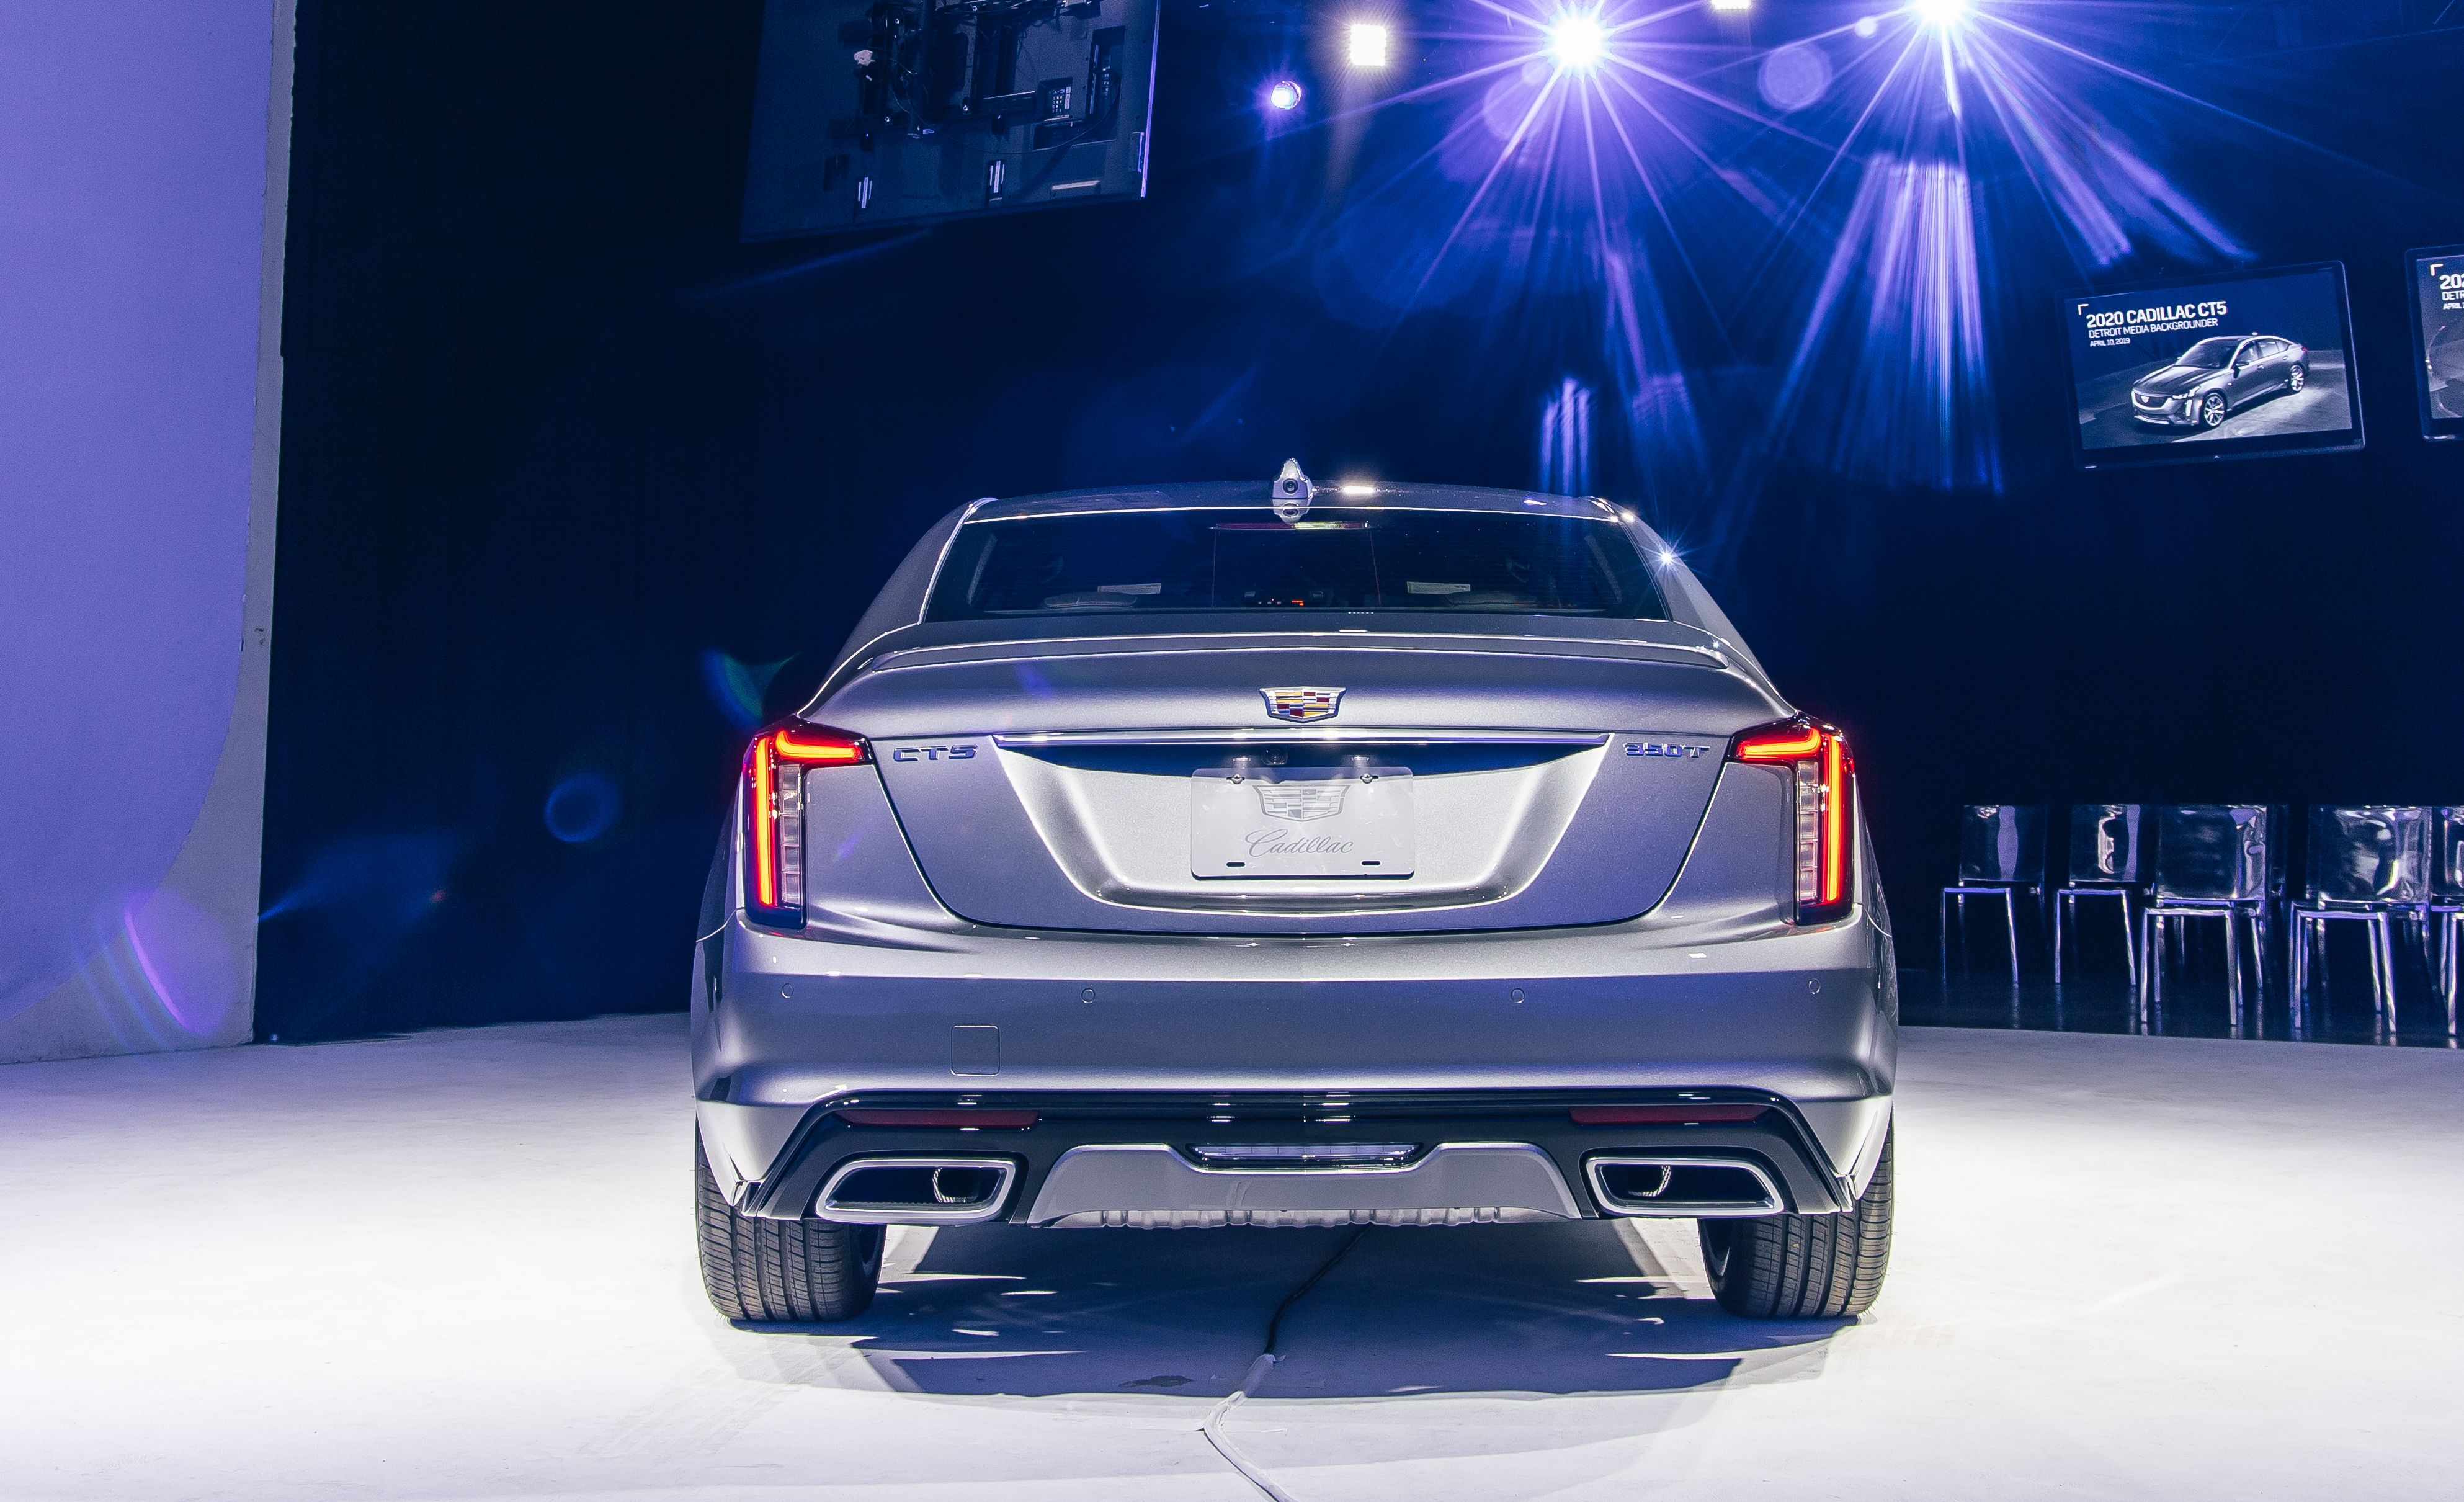 2020 Cadillac Ct5 Sports Sedan Release Date Info Specs